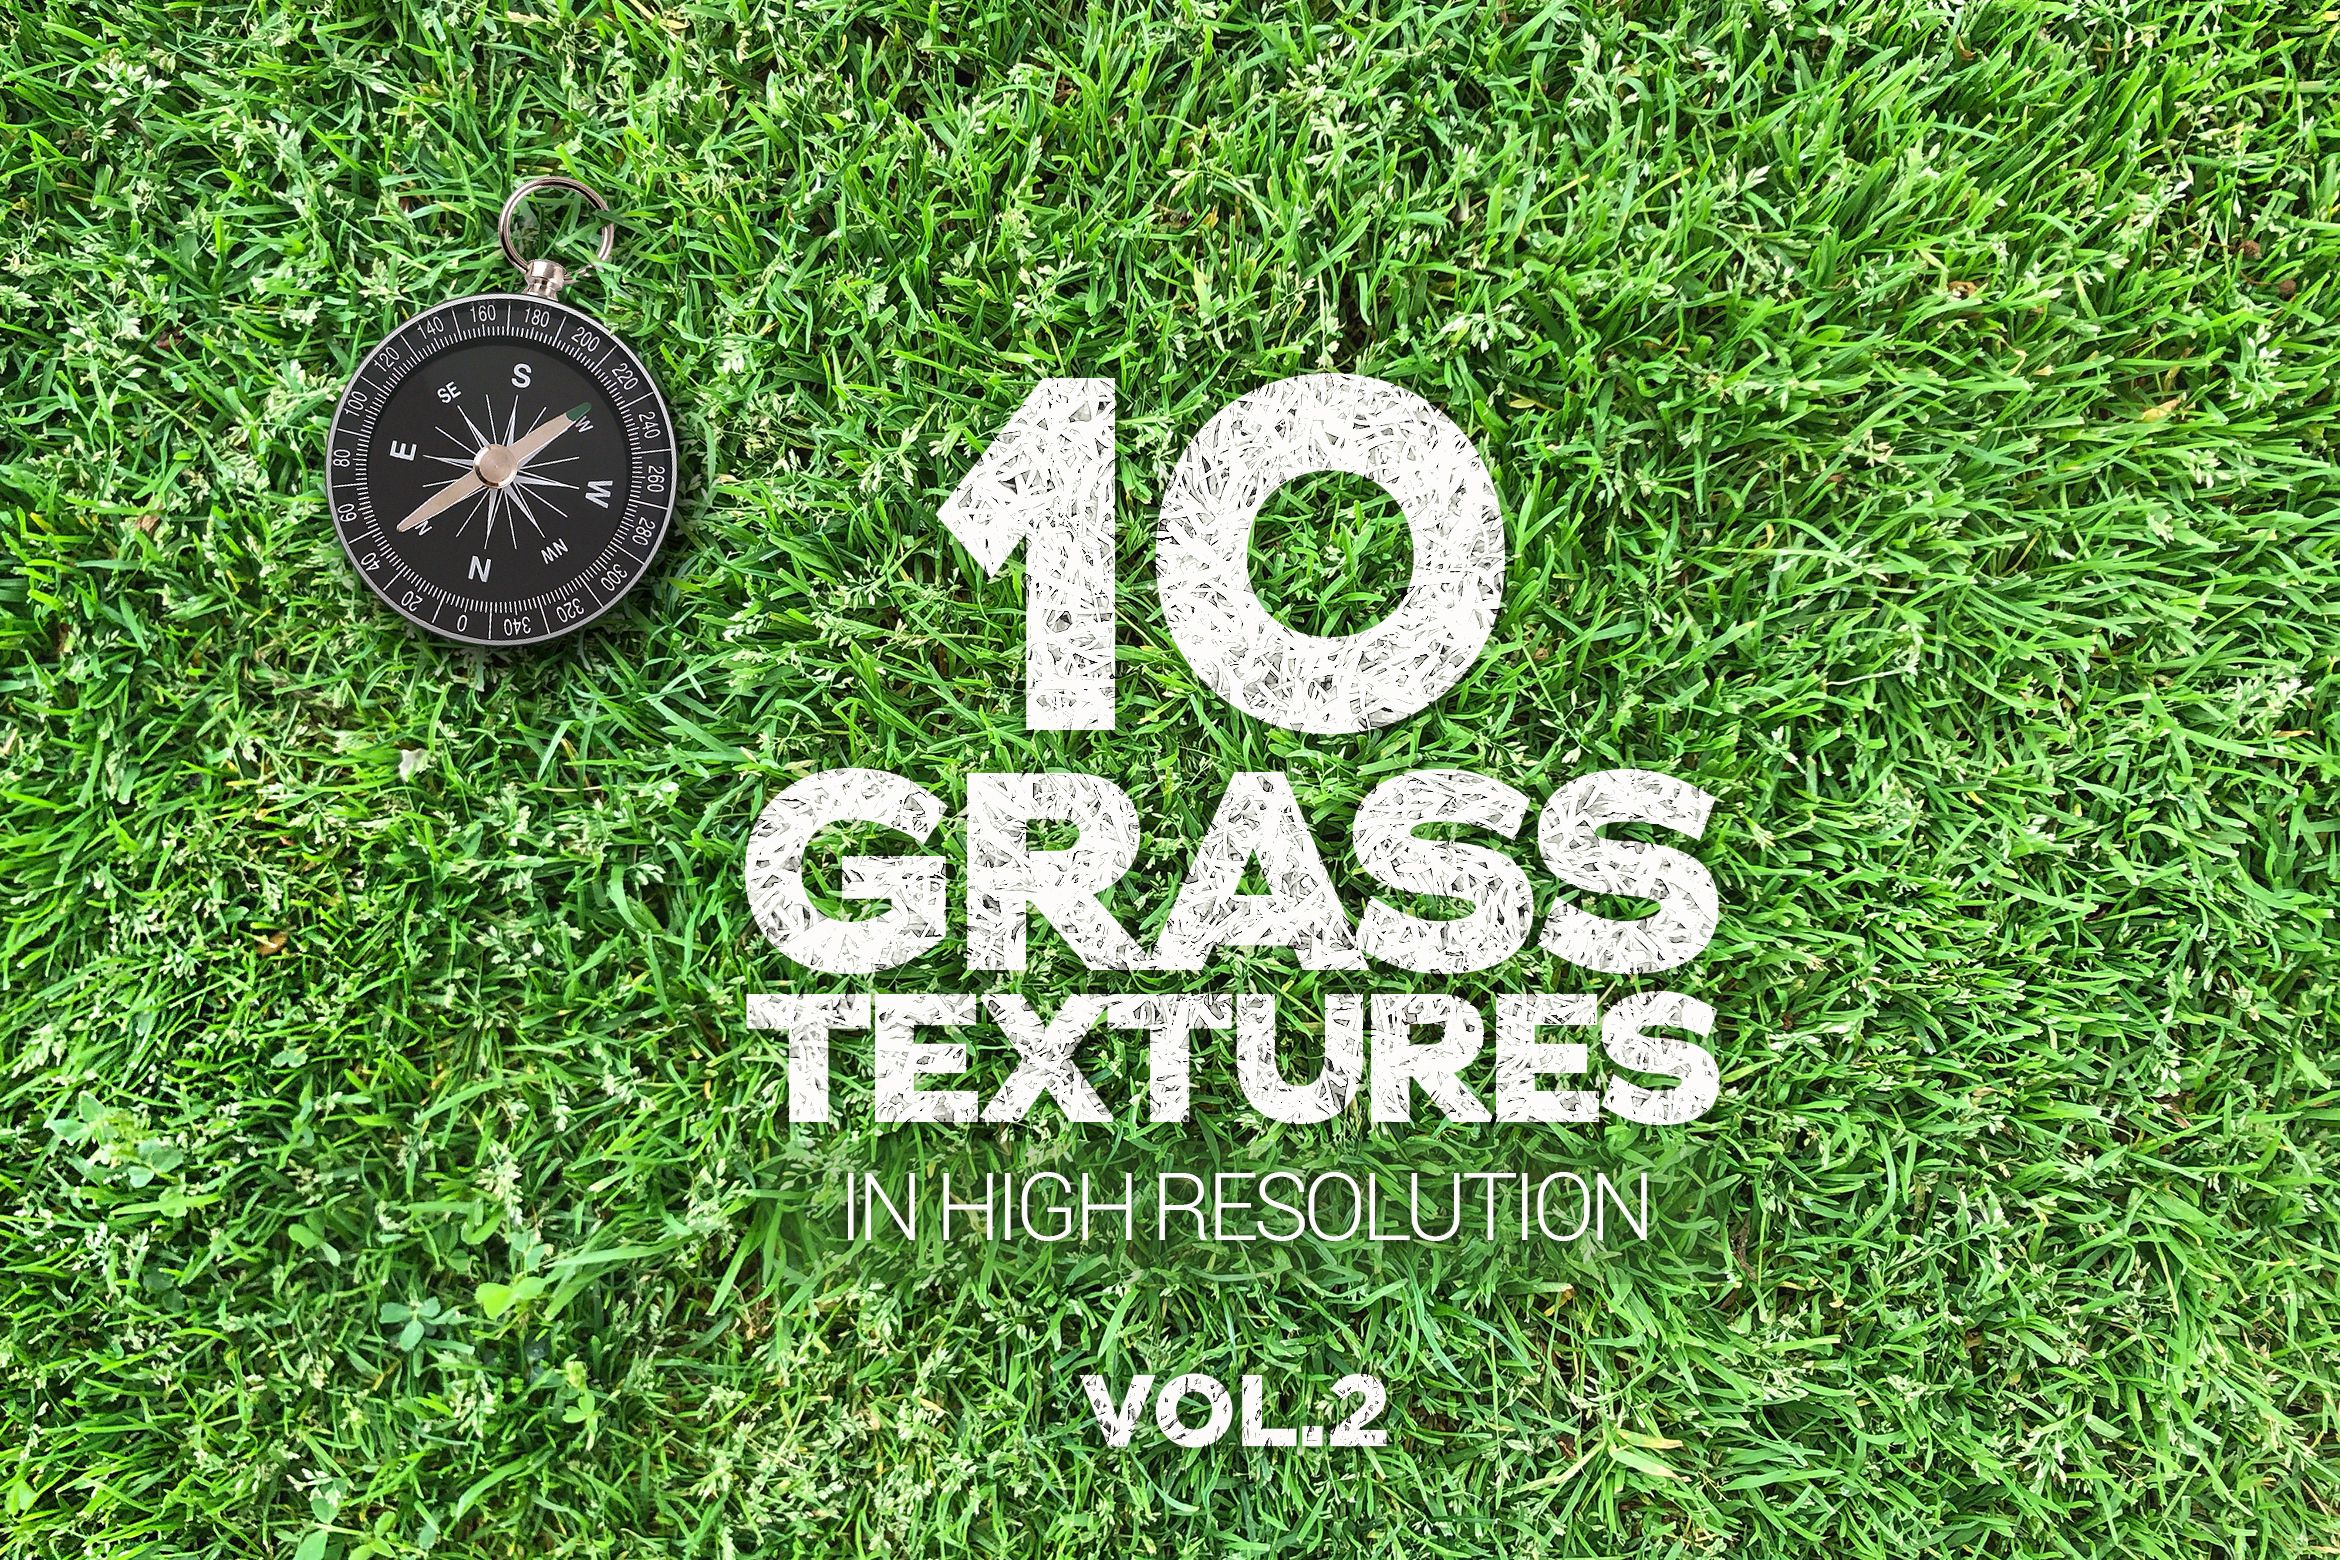 Grass Textures Vol2 X10 Graphic By Smartdesigns With Images